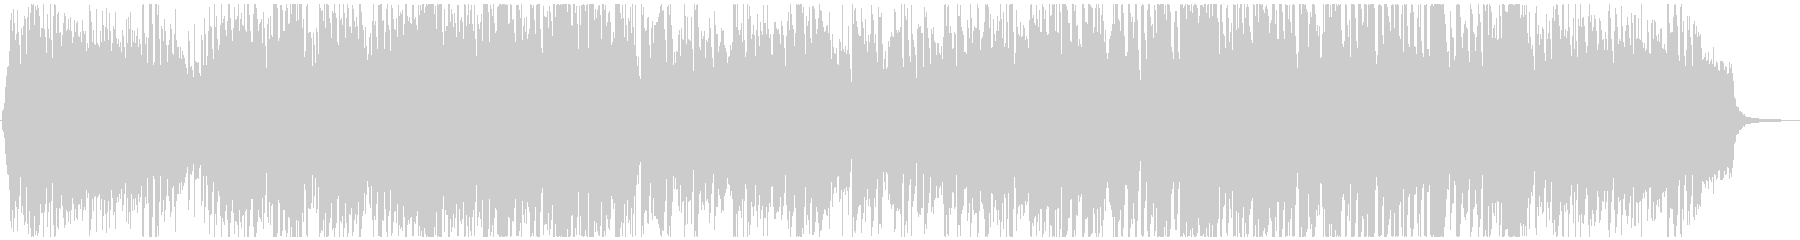 Cheerful and bright cute anime POP's unreproduced waveform